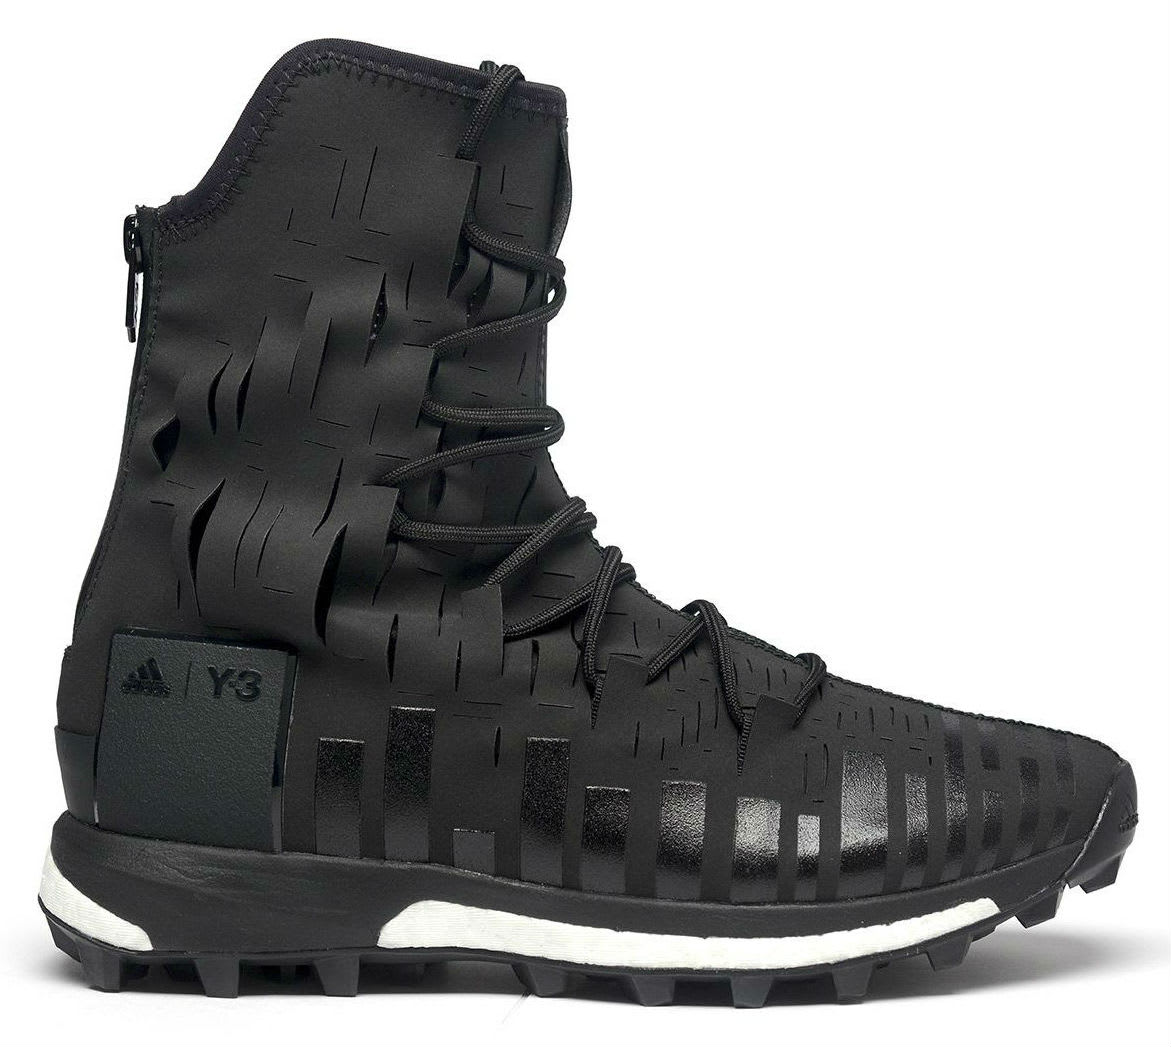 hot sale online e4852 554e9 Adidas Y3 Sport Evasion High Ultra Boost | Sole Collector